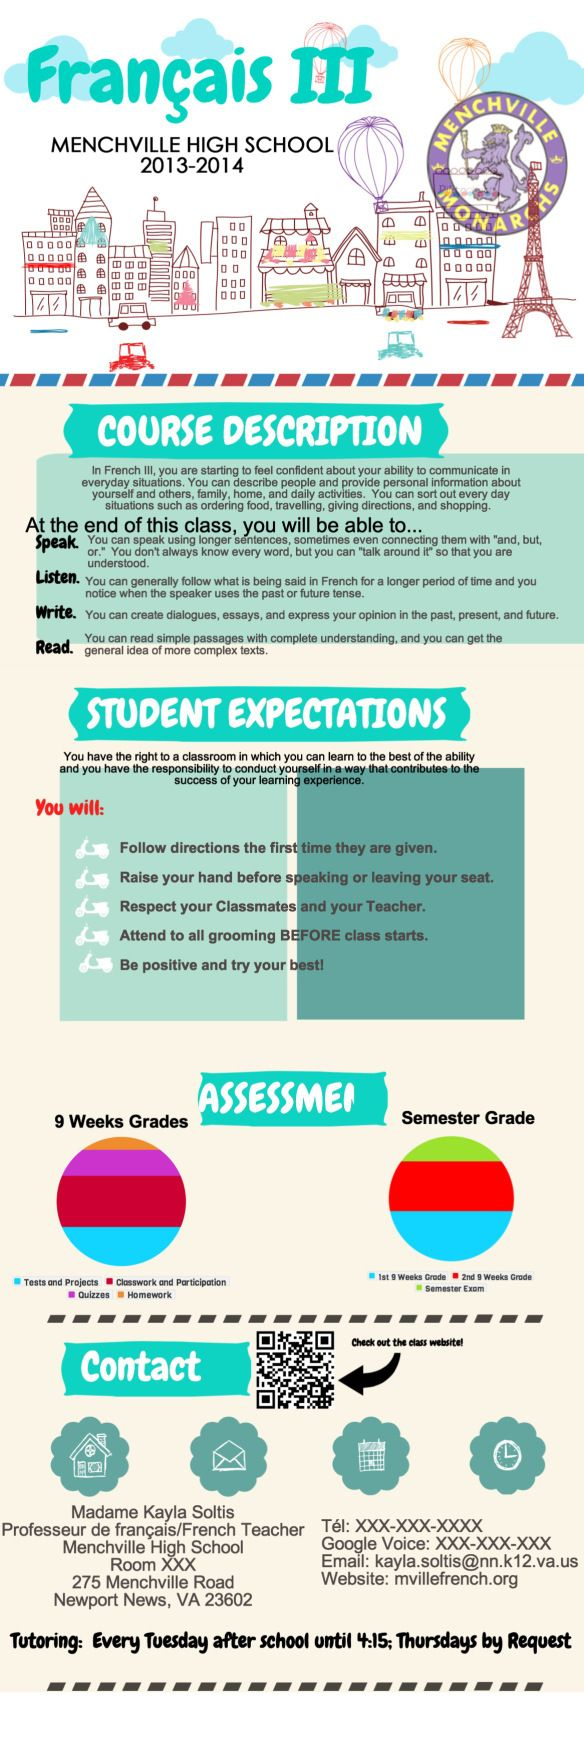 34 best Infograph Syllabi images on Pinterest | Spanish classroom ...